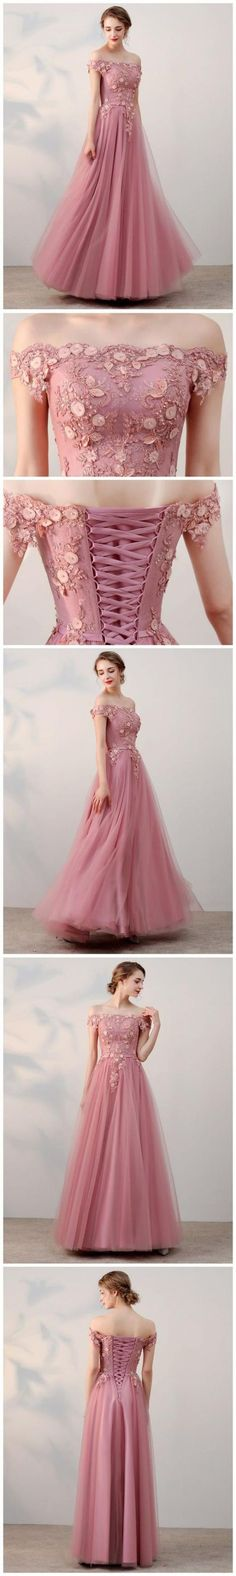 Long Prom Dress, Handmade Prom Dress,Prom Dresses,,Evening Dress, Ball Gown Prom dress, Formal Women Dress,prom dress